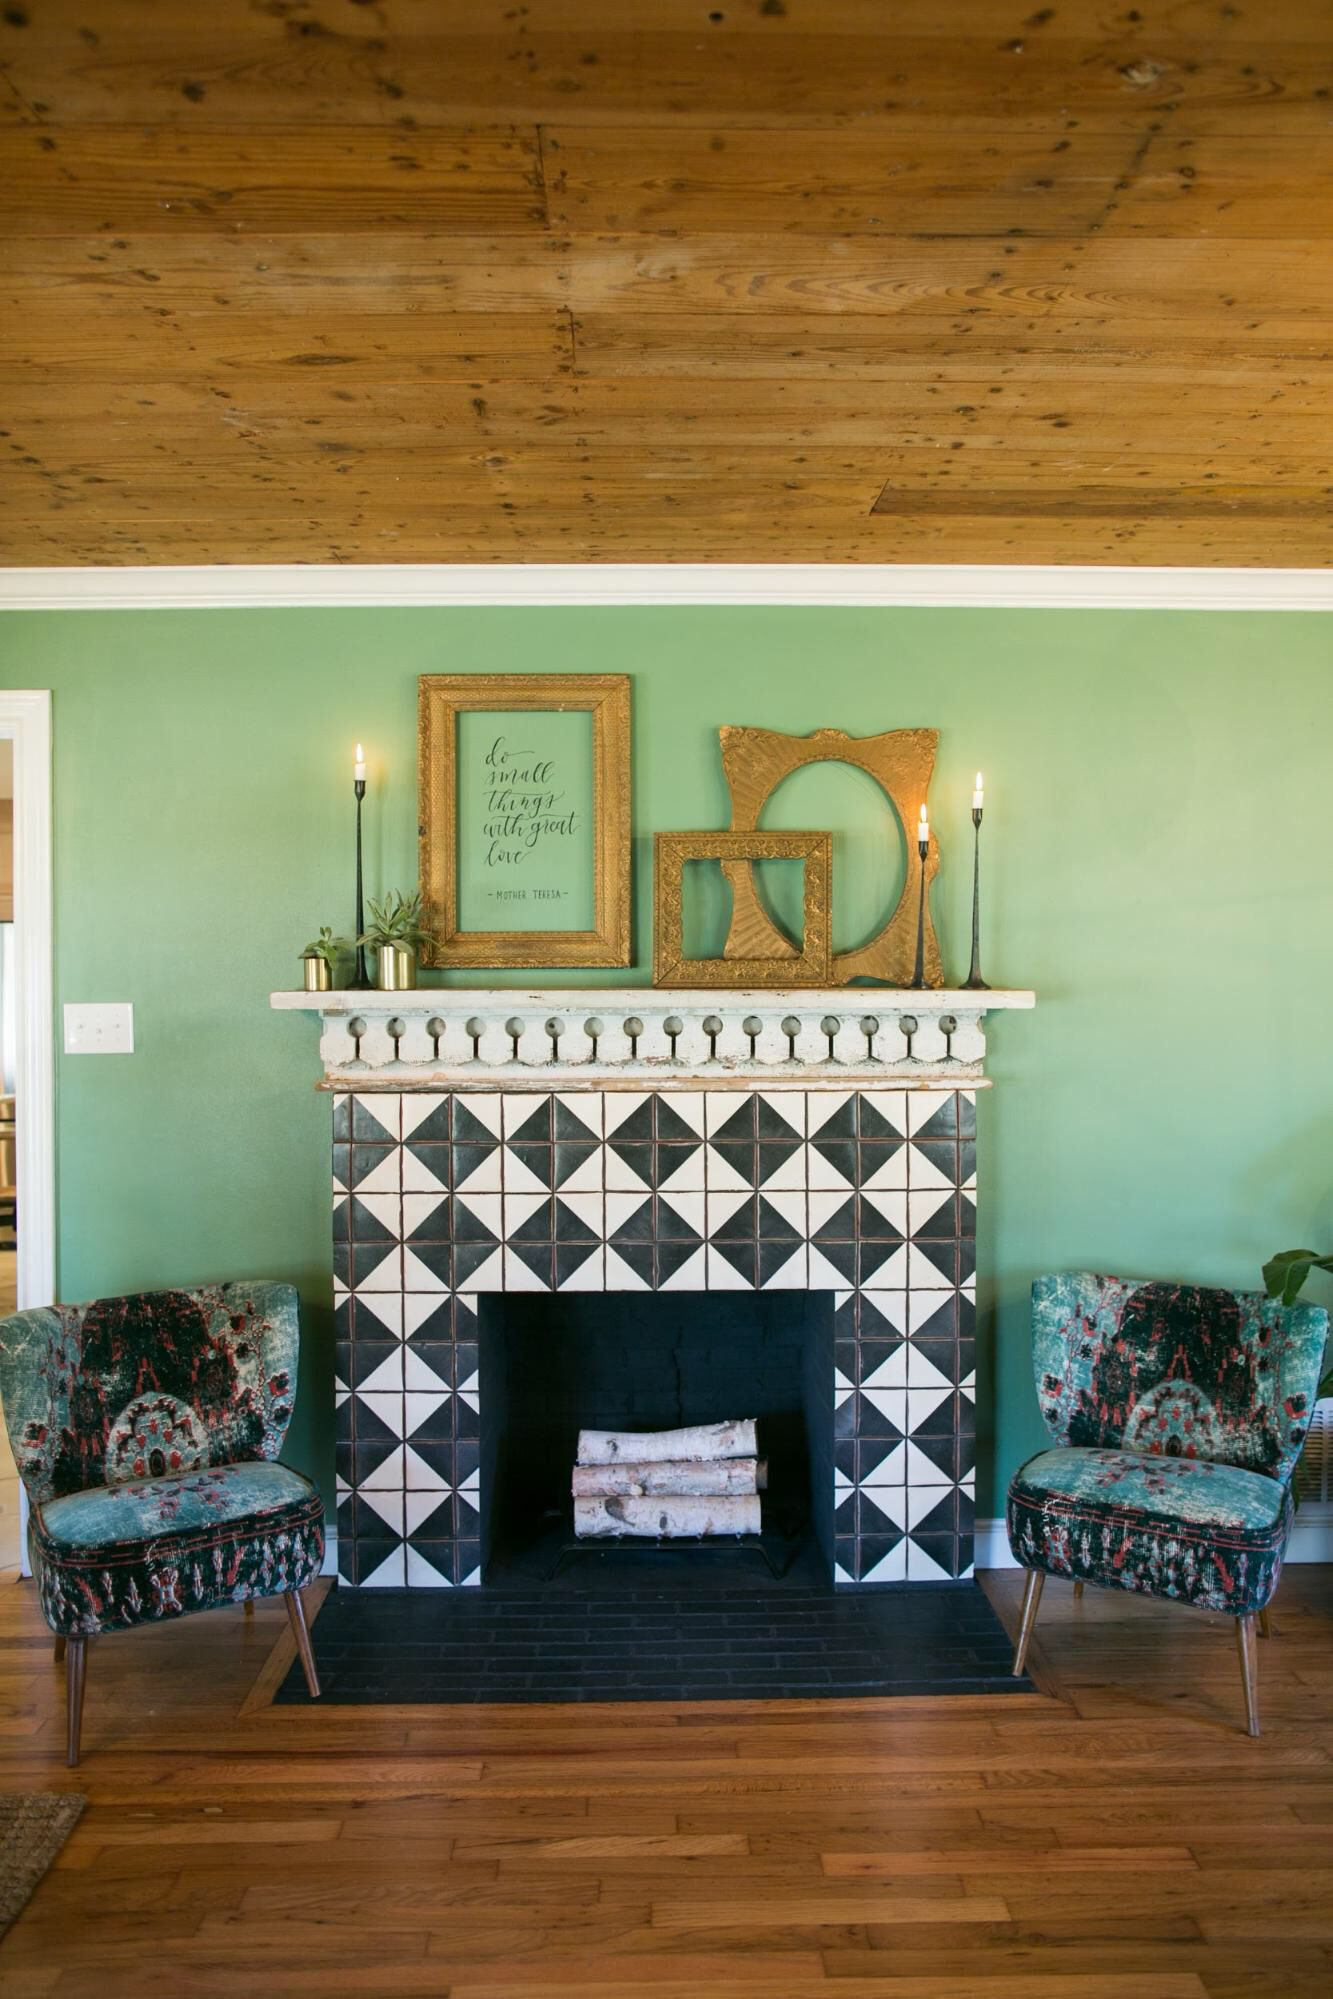 I Adore The Eclectic Style On The Latest Fixer Upper